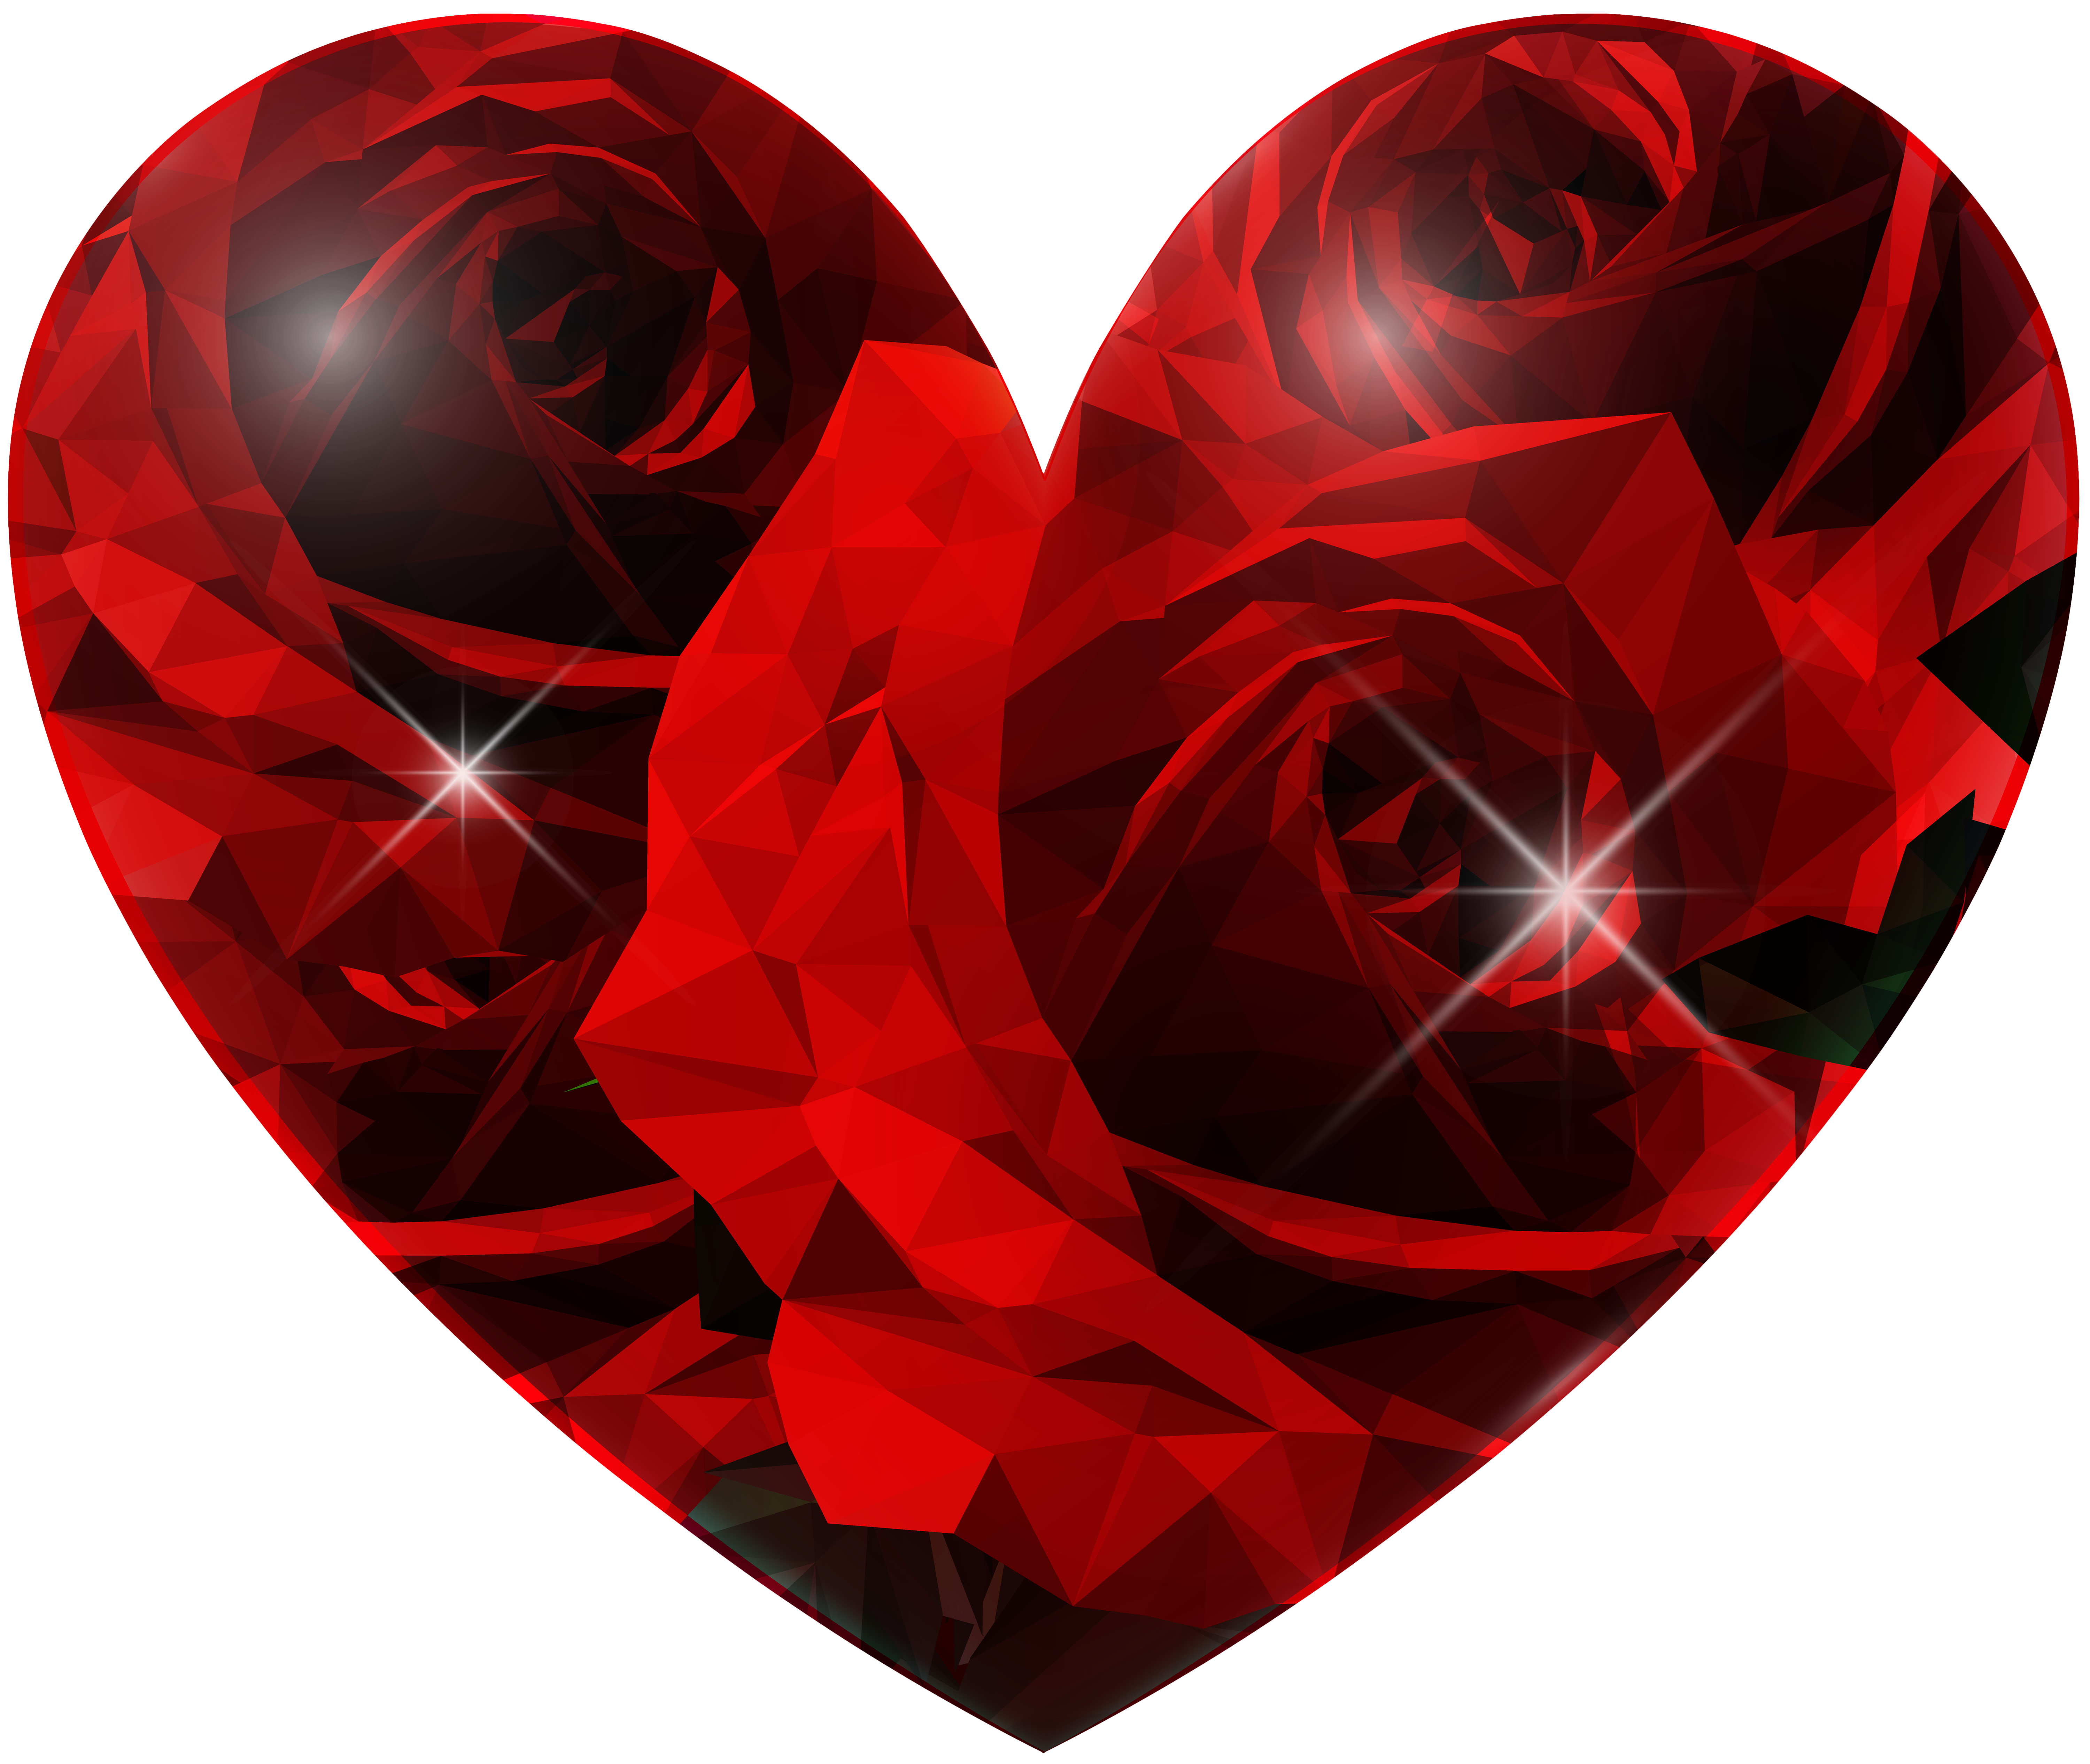 Human heart clipart free graphic download Rose Heart PNG Clip Art Image | Gallery Yopriceville - High-Quality ... graphic download